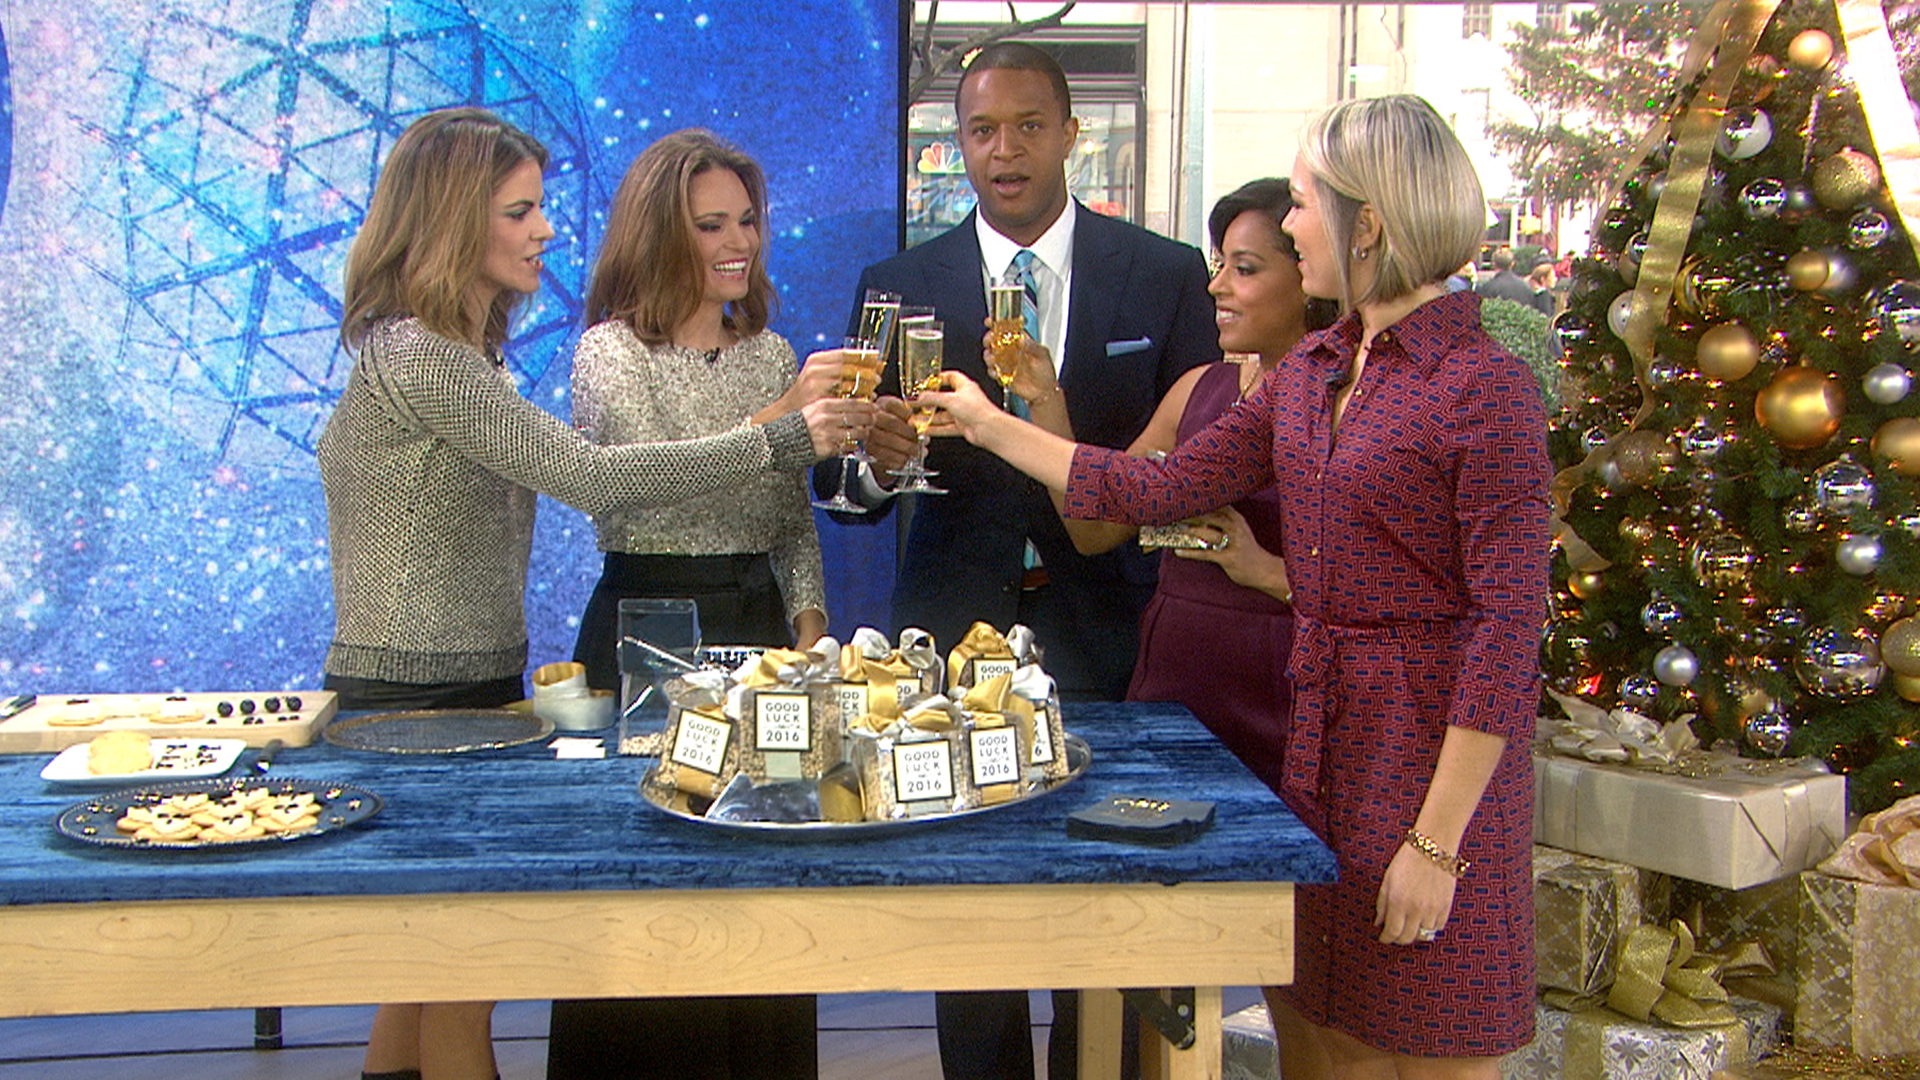 Staying home on New Year's Eve? Great ideas to celebrate ...